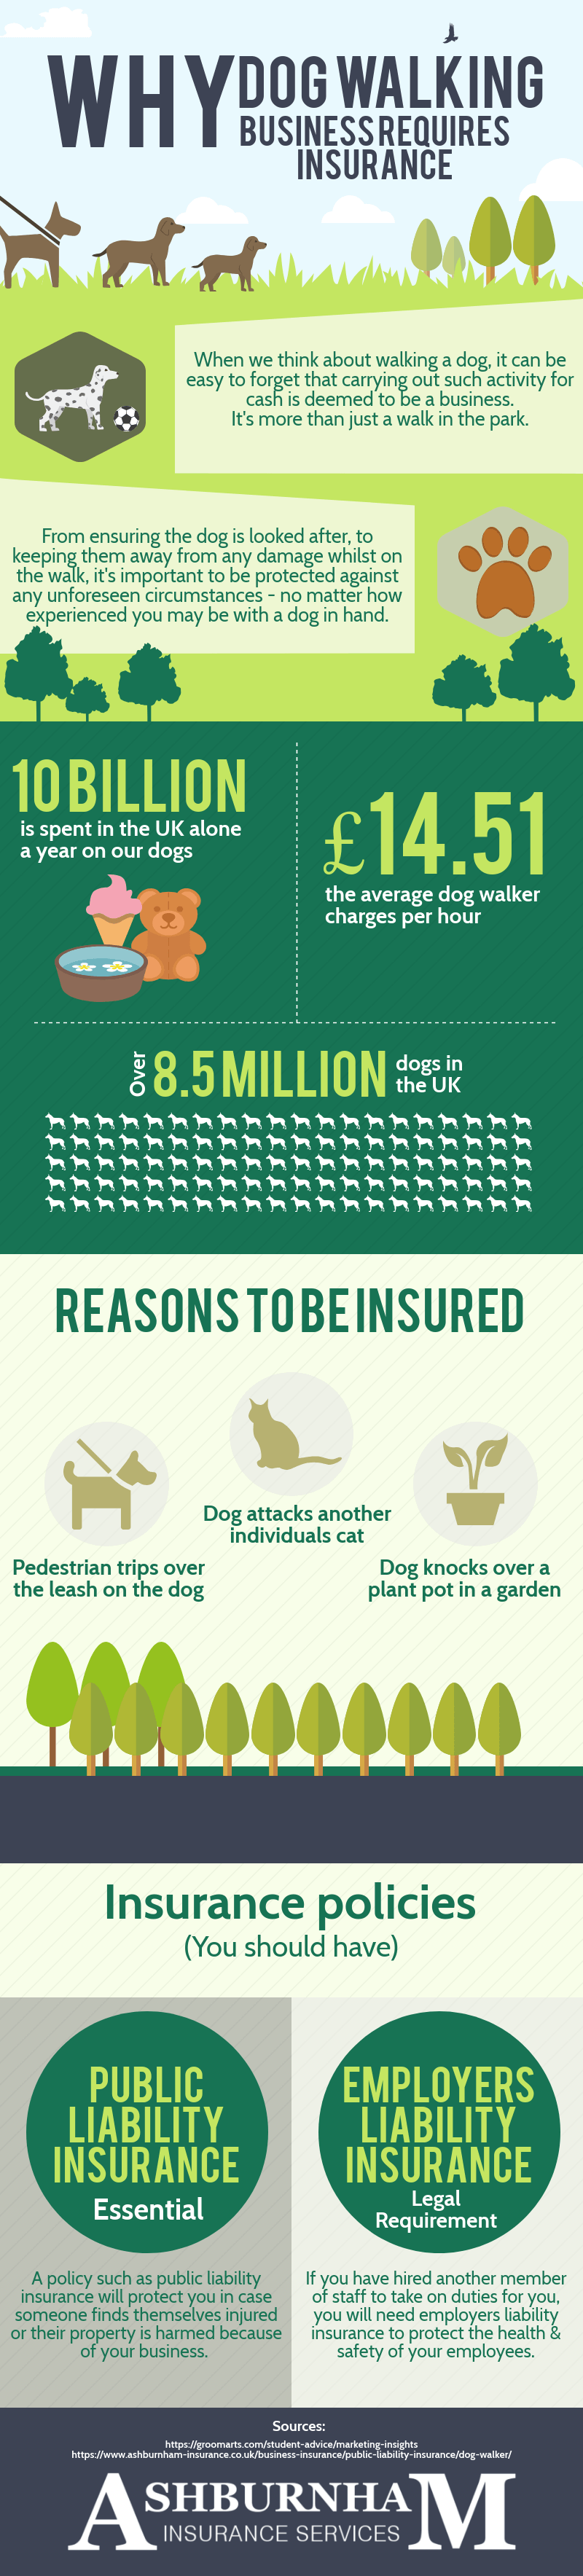 Why Dog Walking Business Requires Insurance Infographic